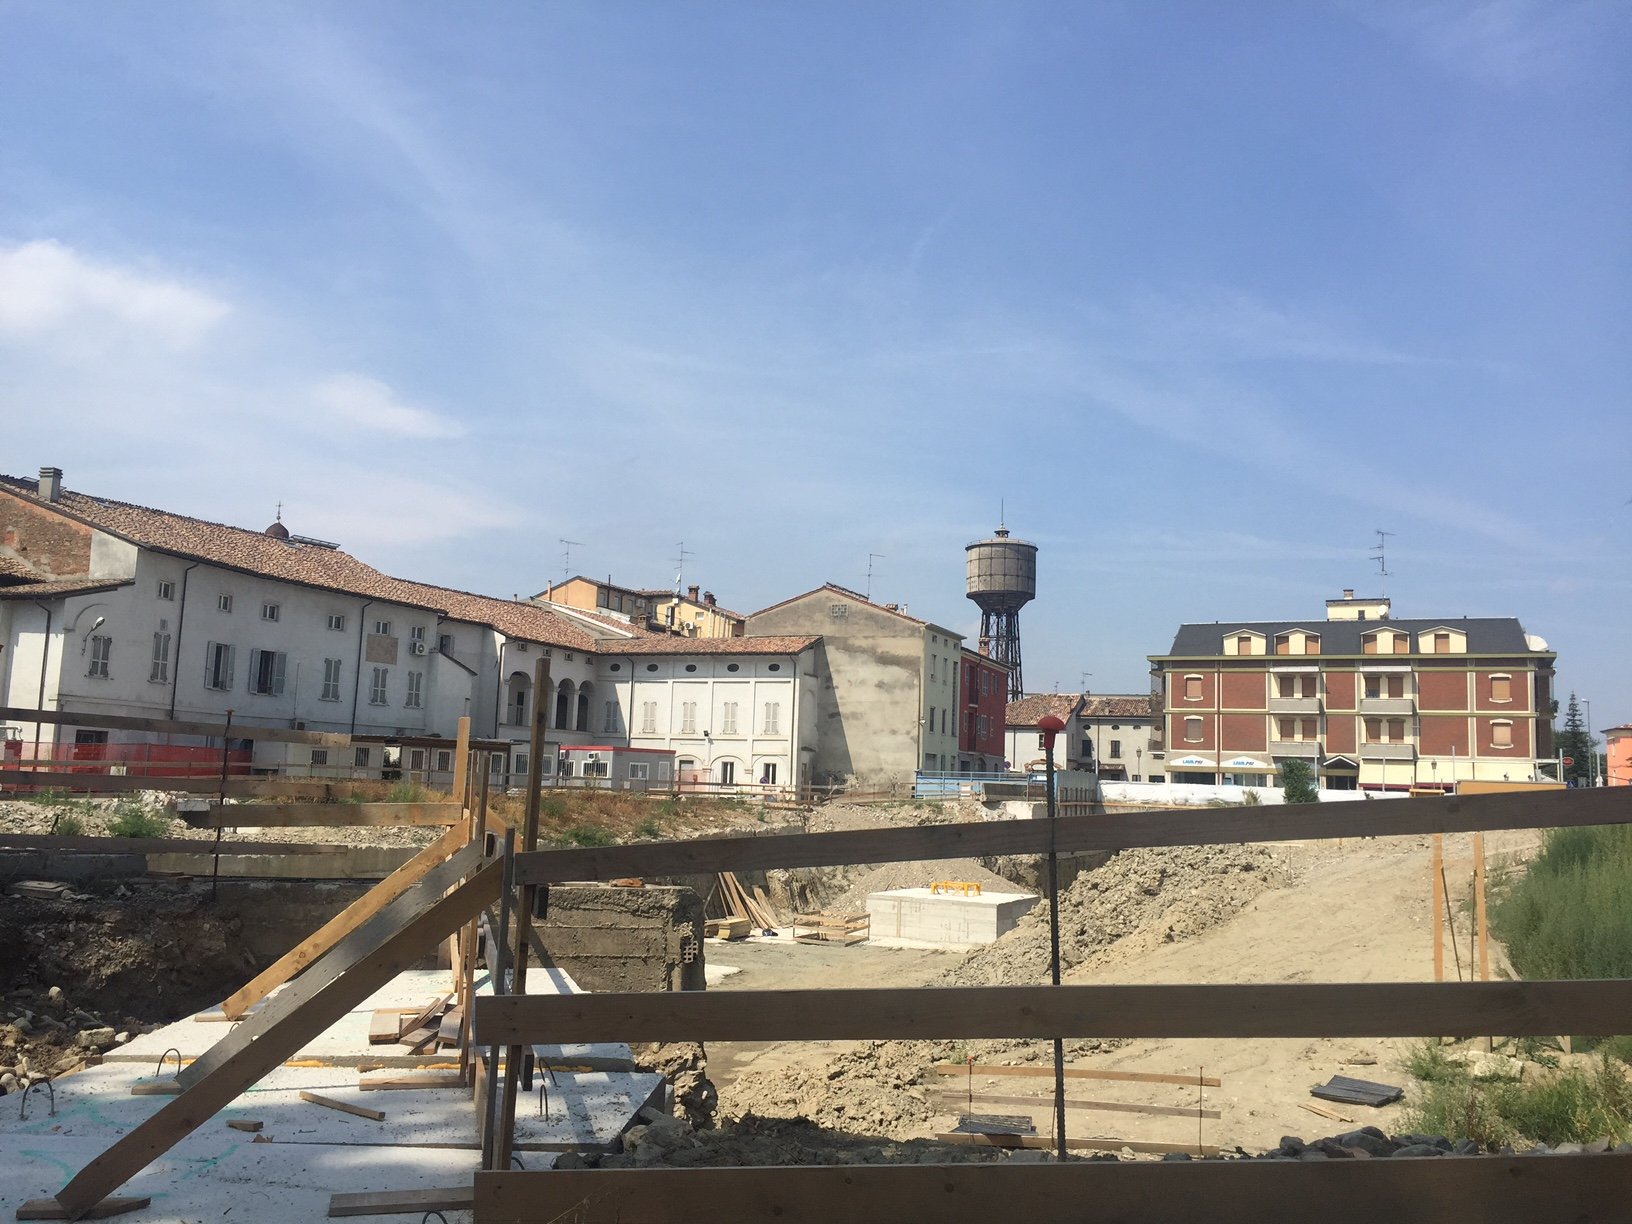 ospedale-cantiere-18-agosto